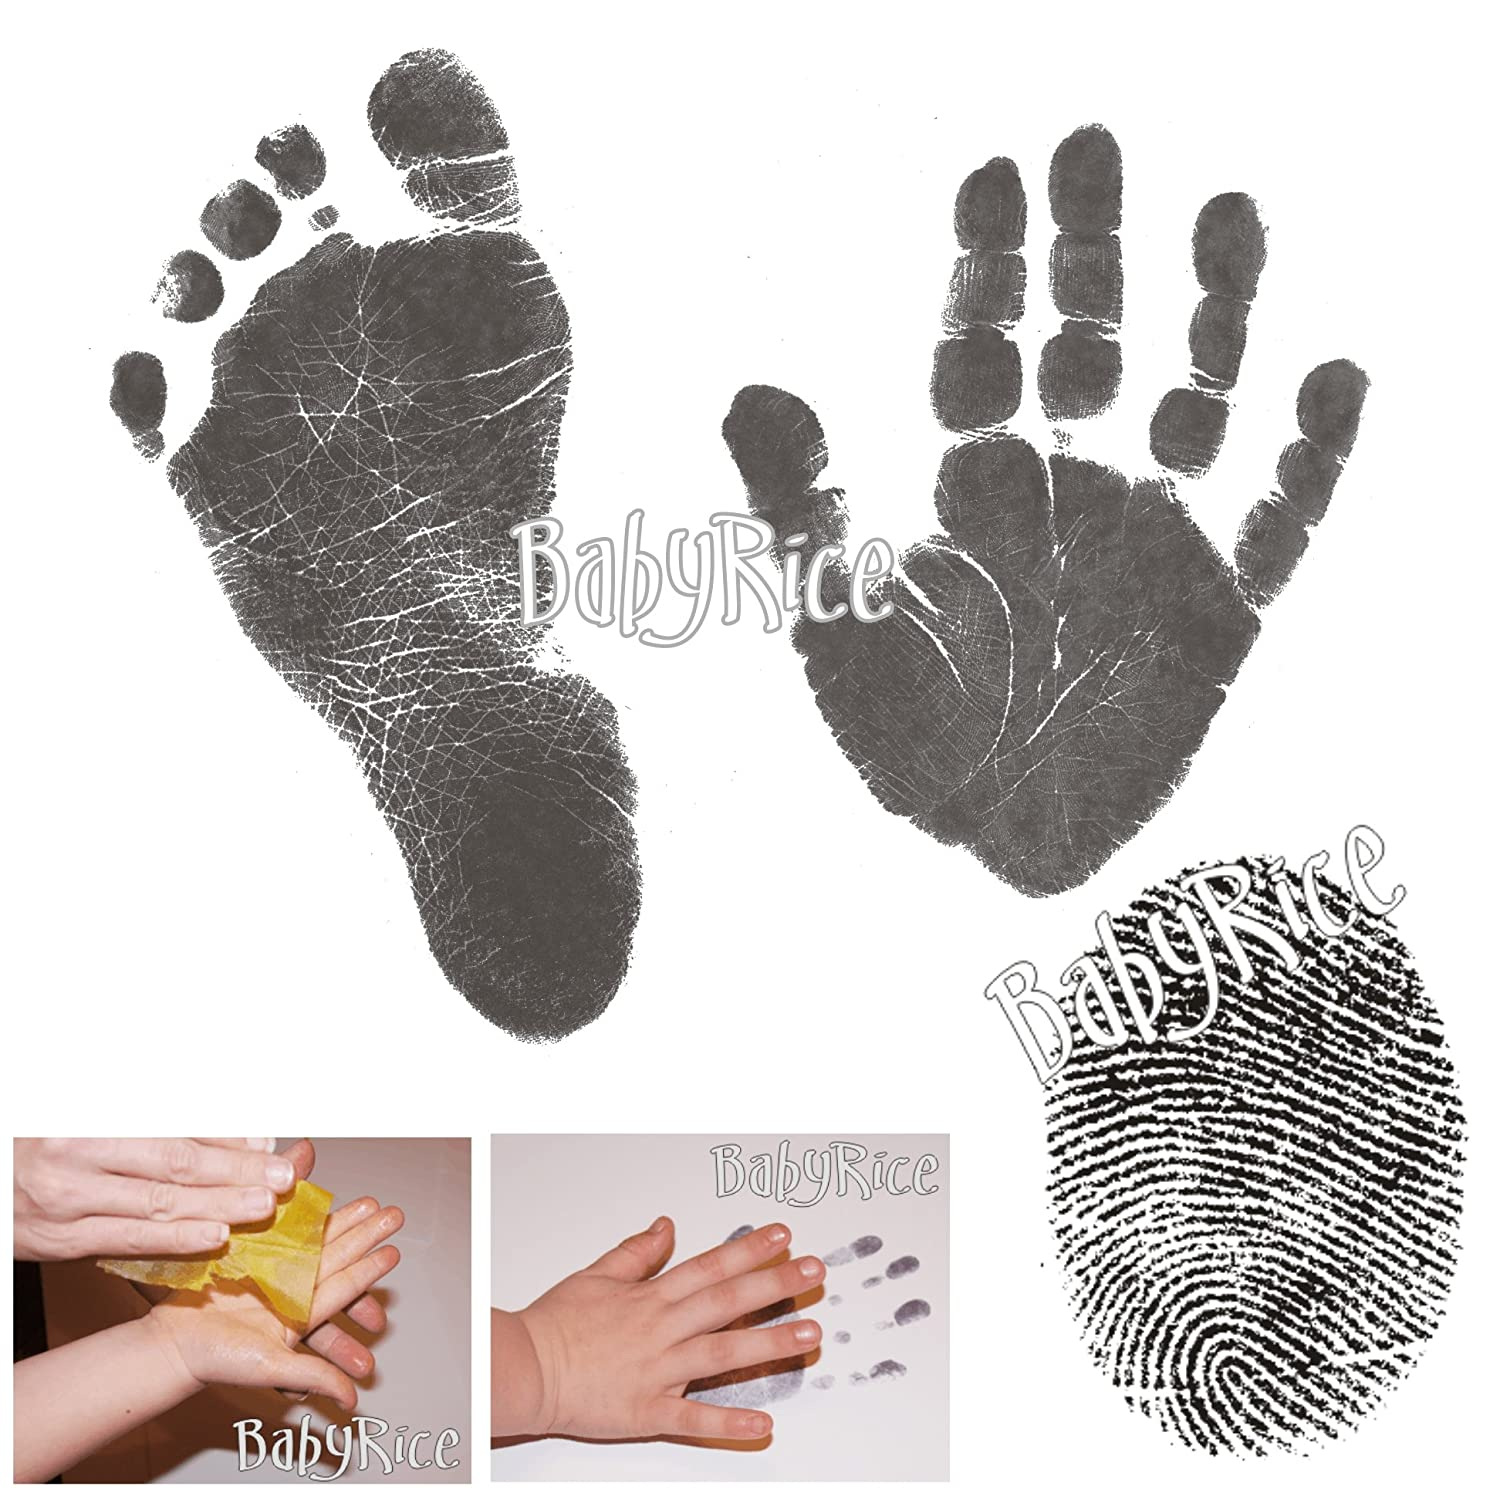 BabyRice Value Baby Handprints and Footprints Kit Black Inkless Wipes No Messy Ink! Choose pack size (2 WIPES / 8xA5 CARDS) IL.BLK.VARI